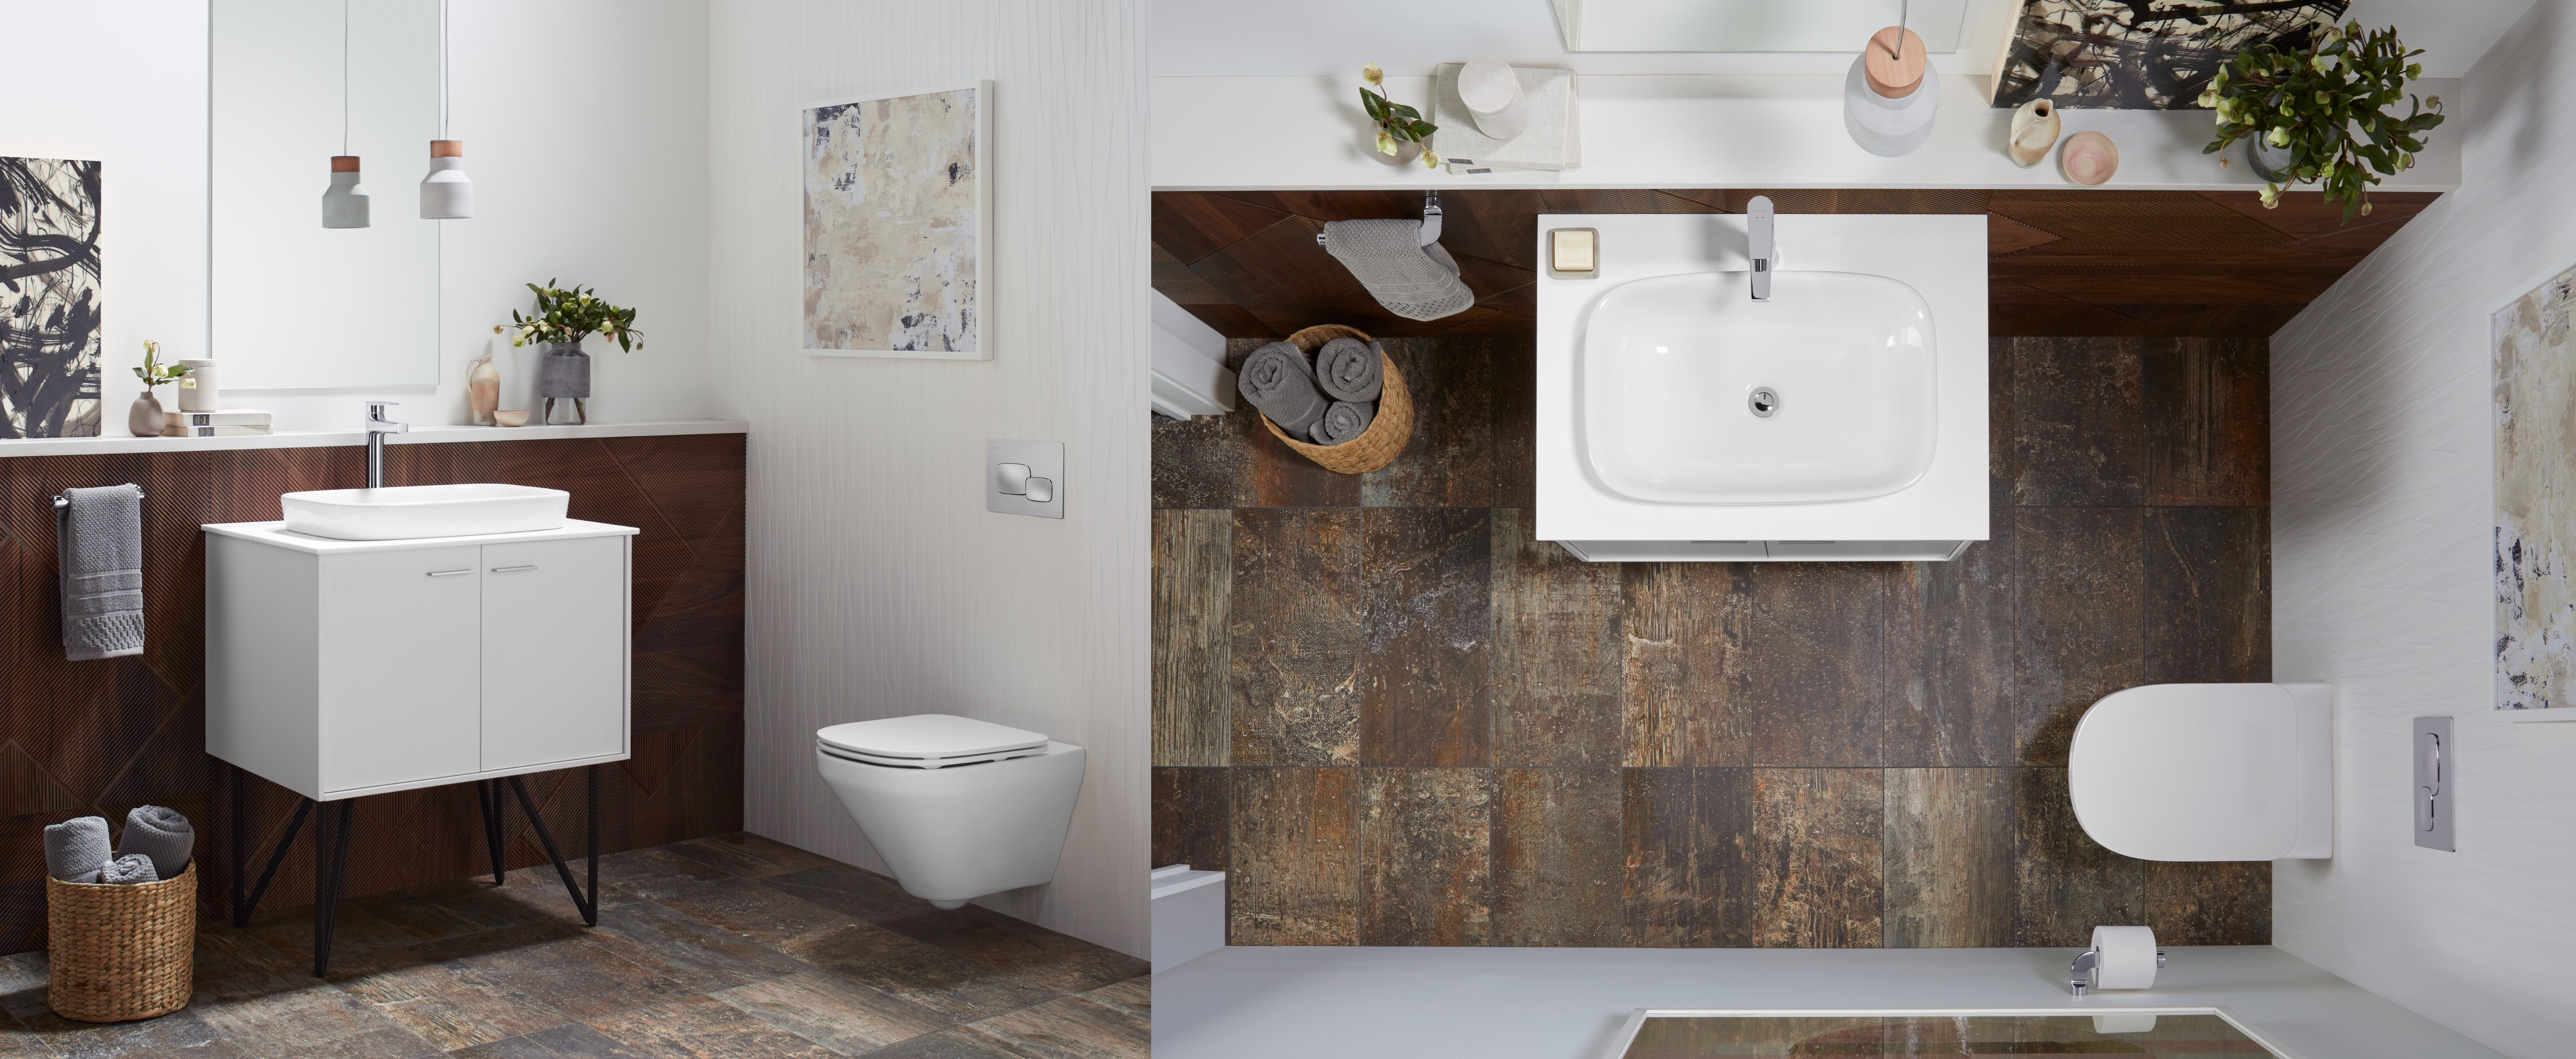 Bathrooms Archives SA Home Owner